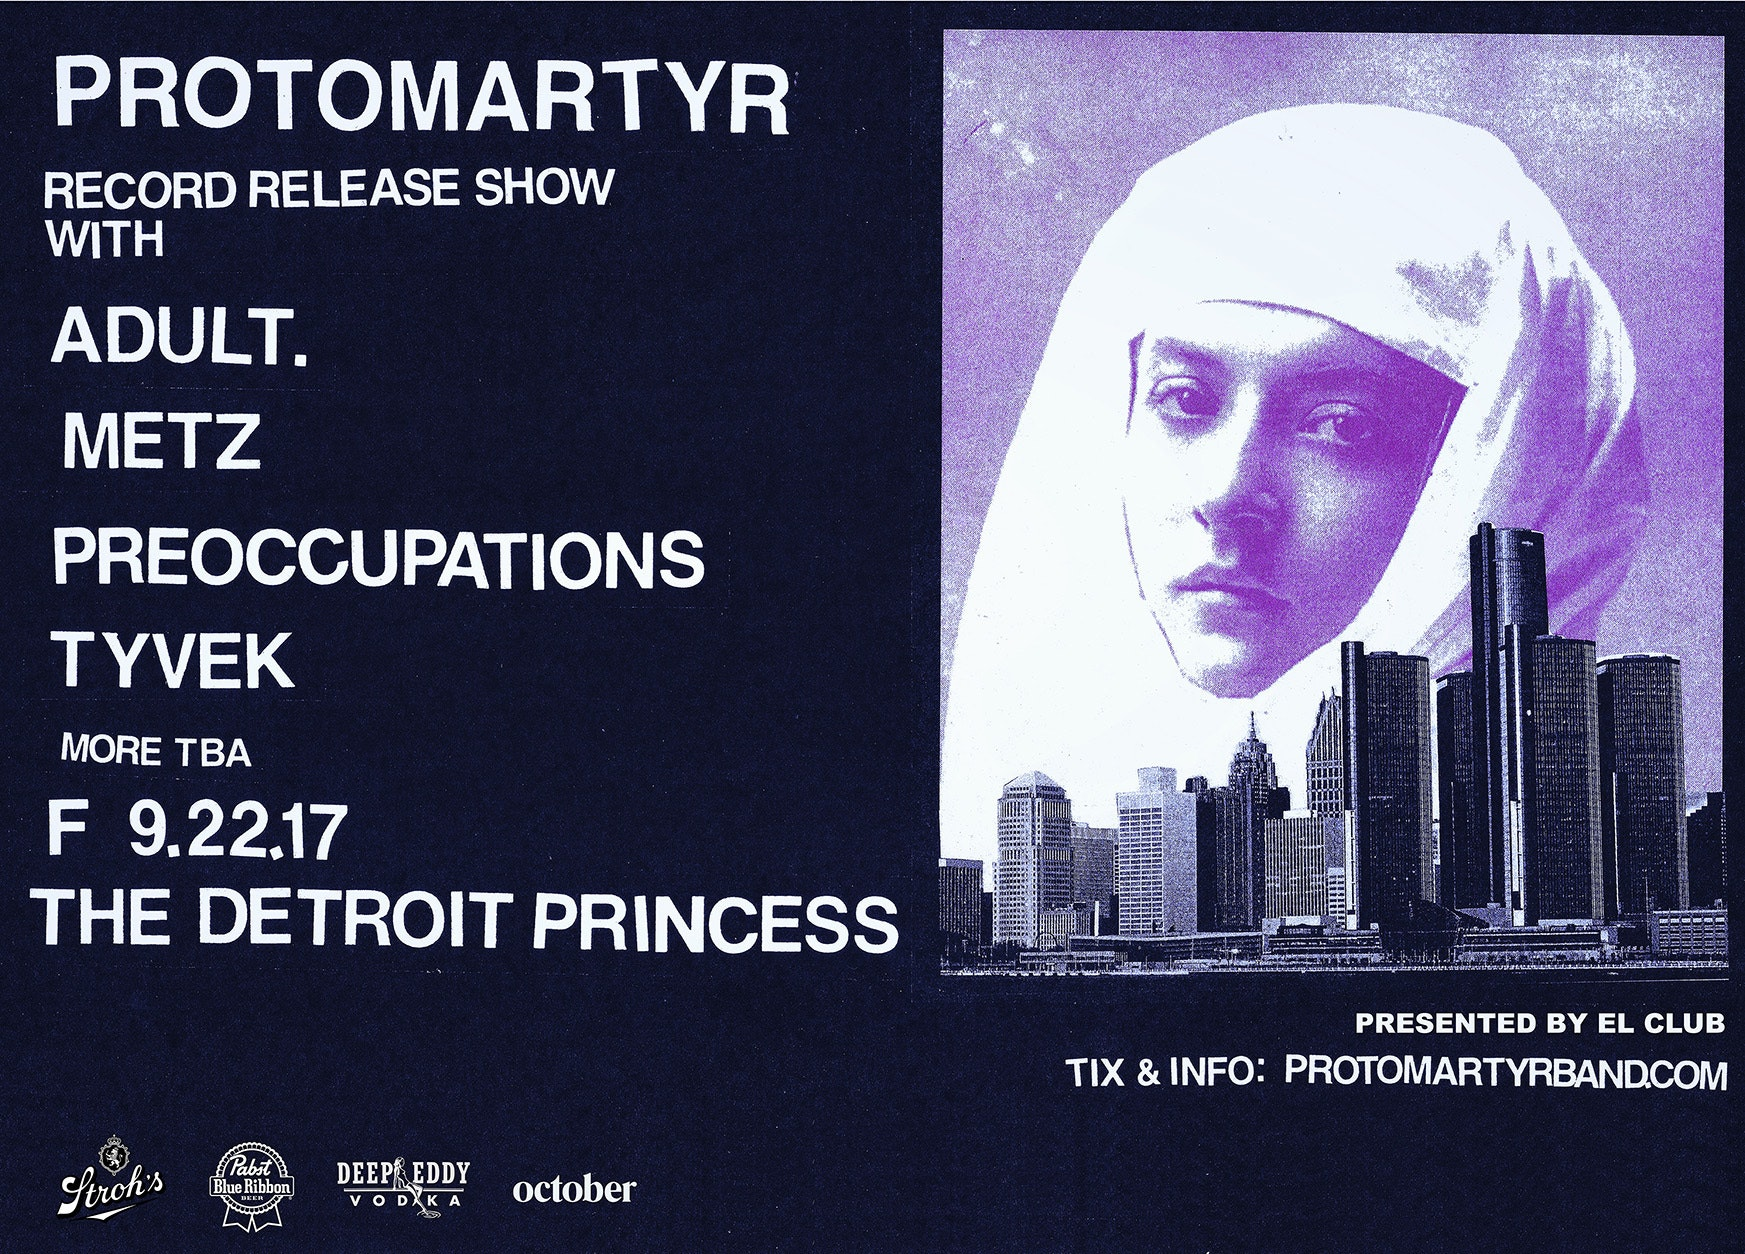 Protomartyr record release show boat